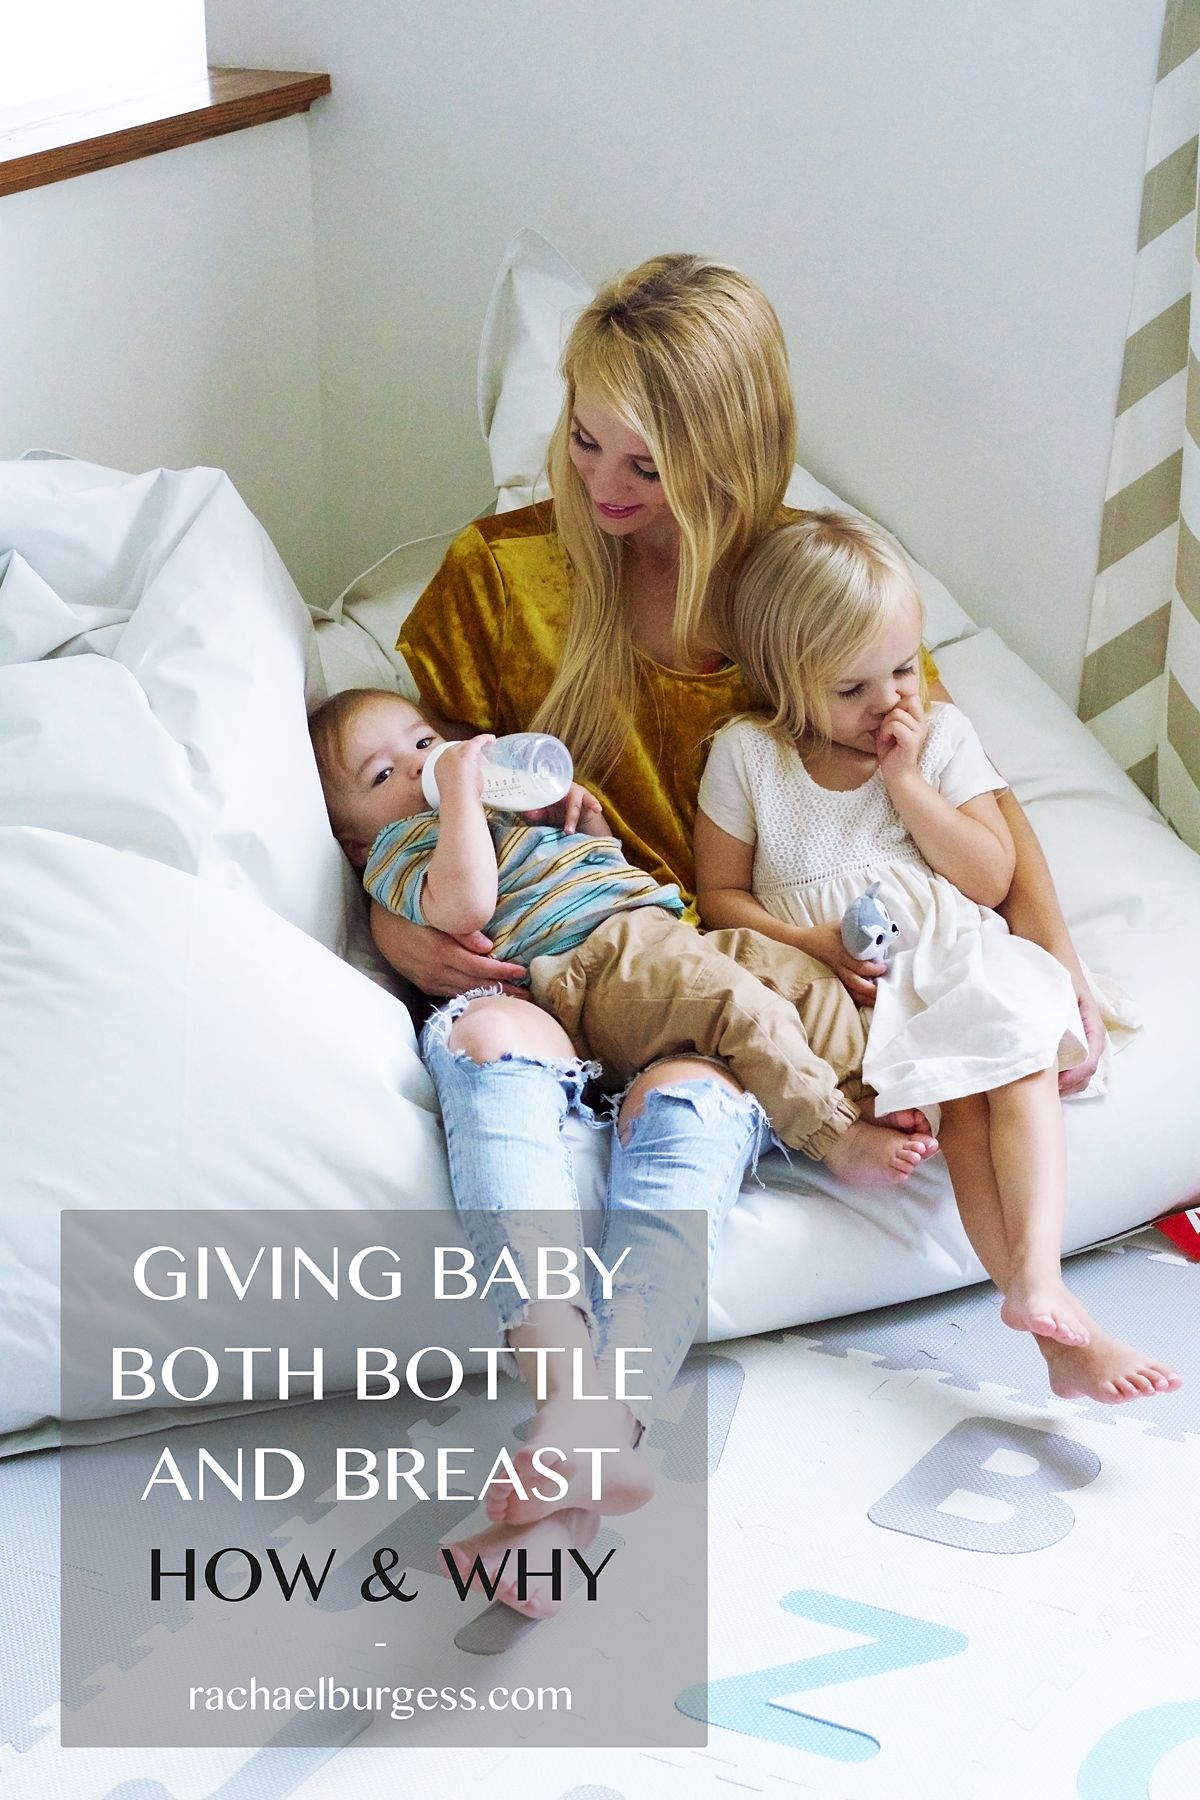 Both Bottle and Breastfeed | Rachael Burgess